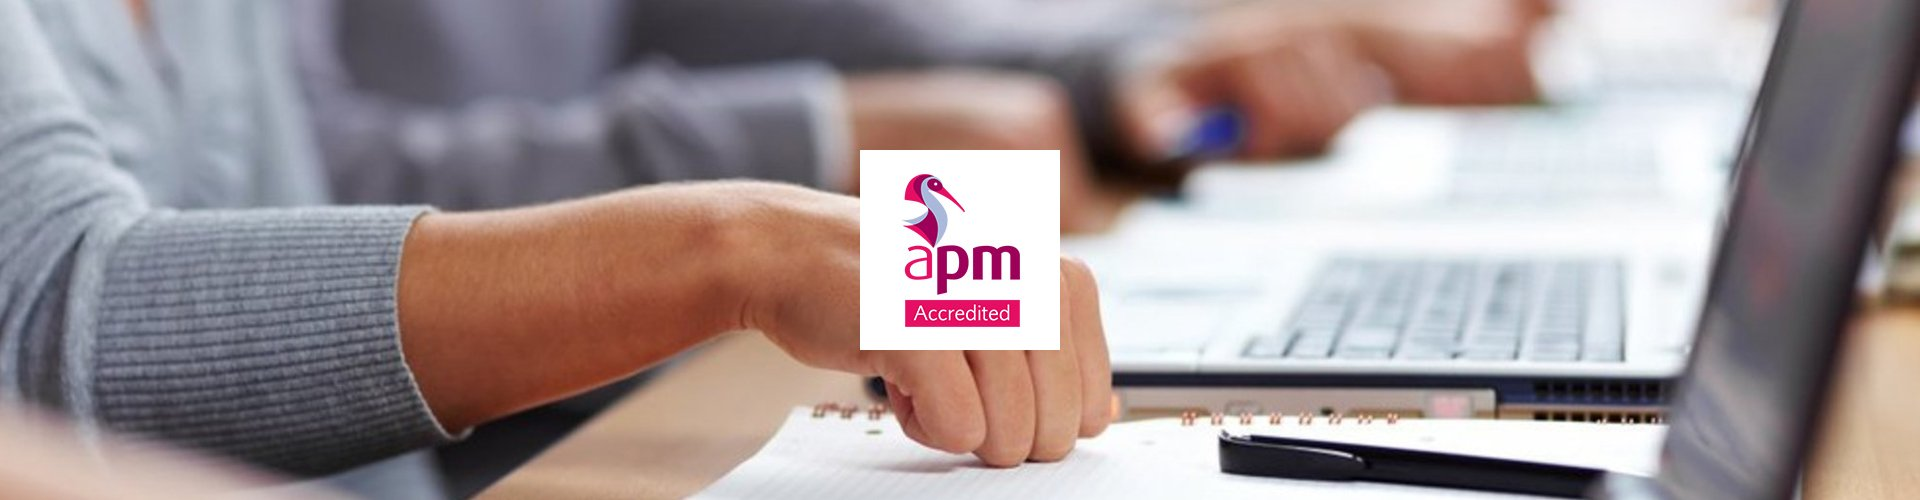 APM Accredited Legal Project Management Training (LPM) Wellingtone PPM